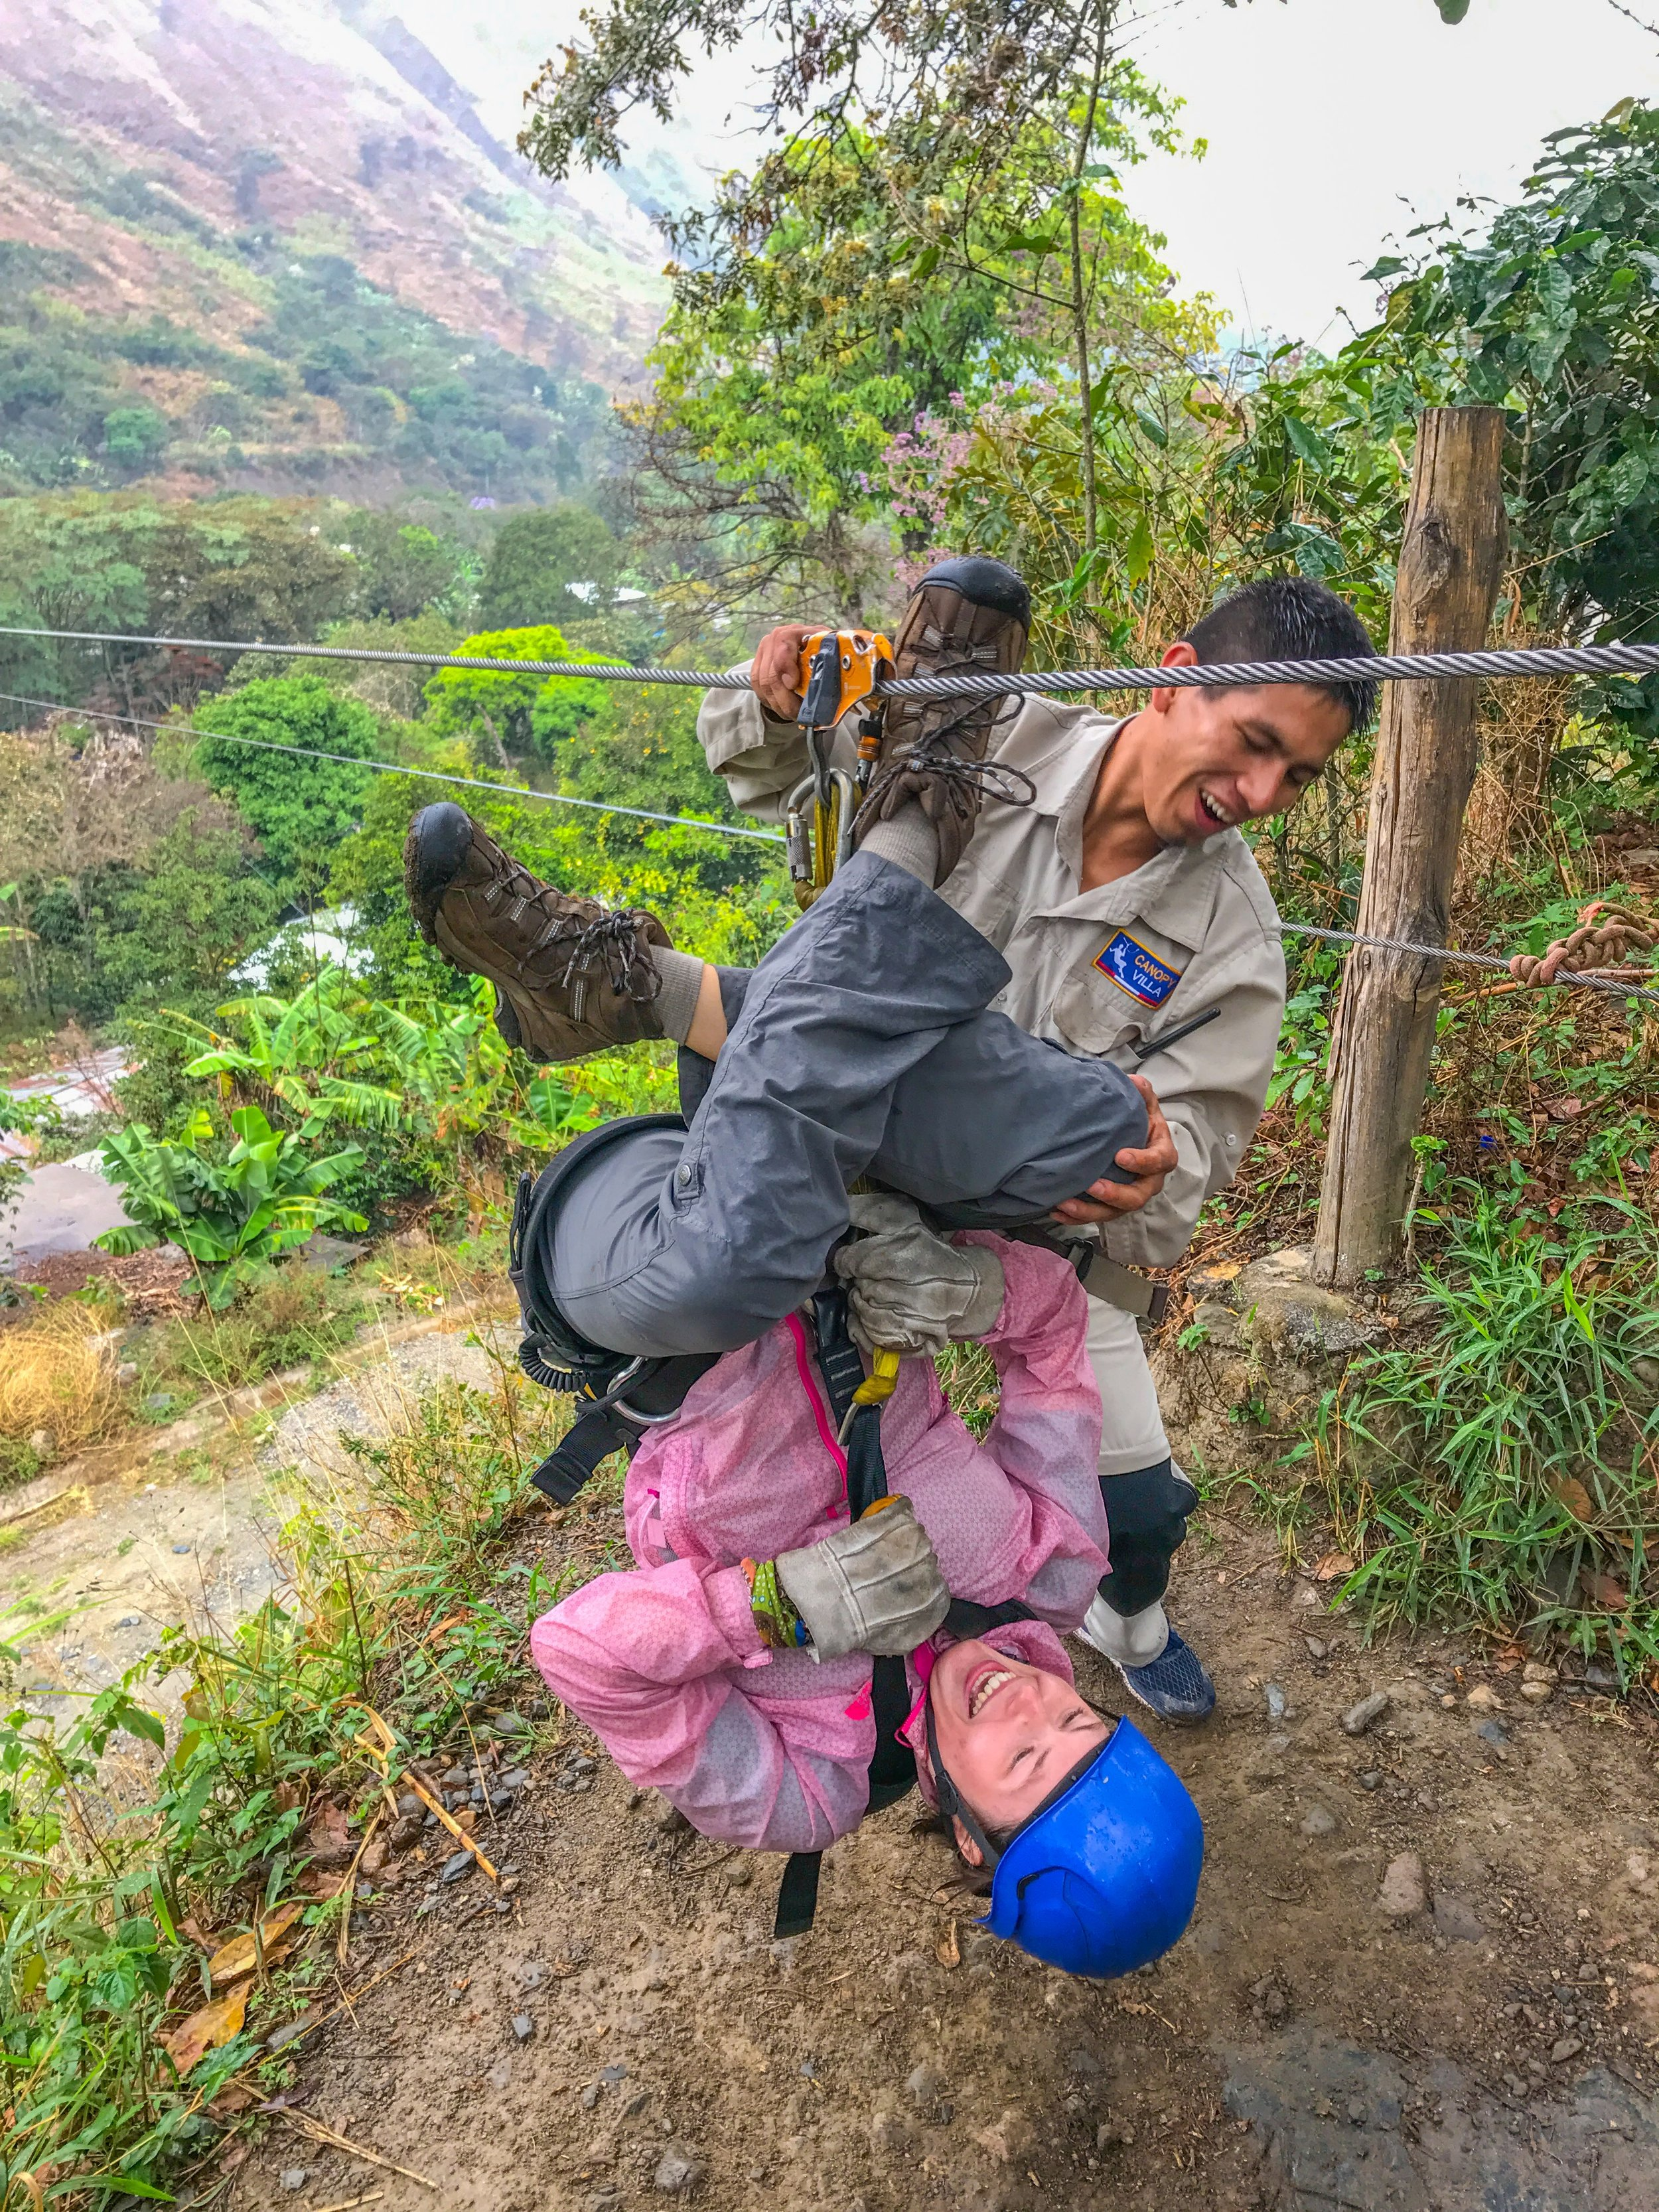 Zip lining through the Andes mountains